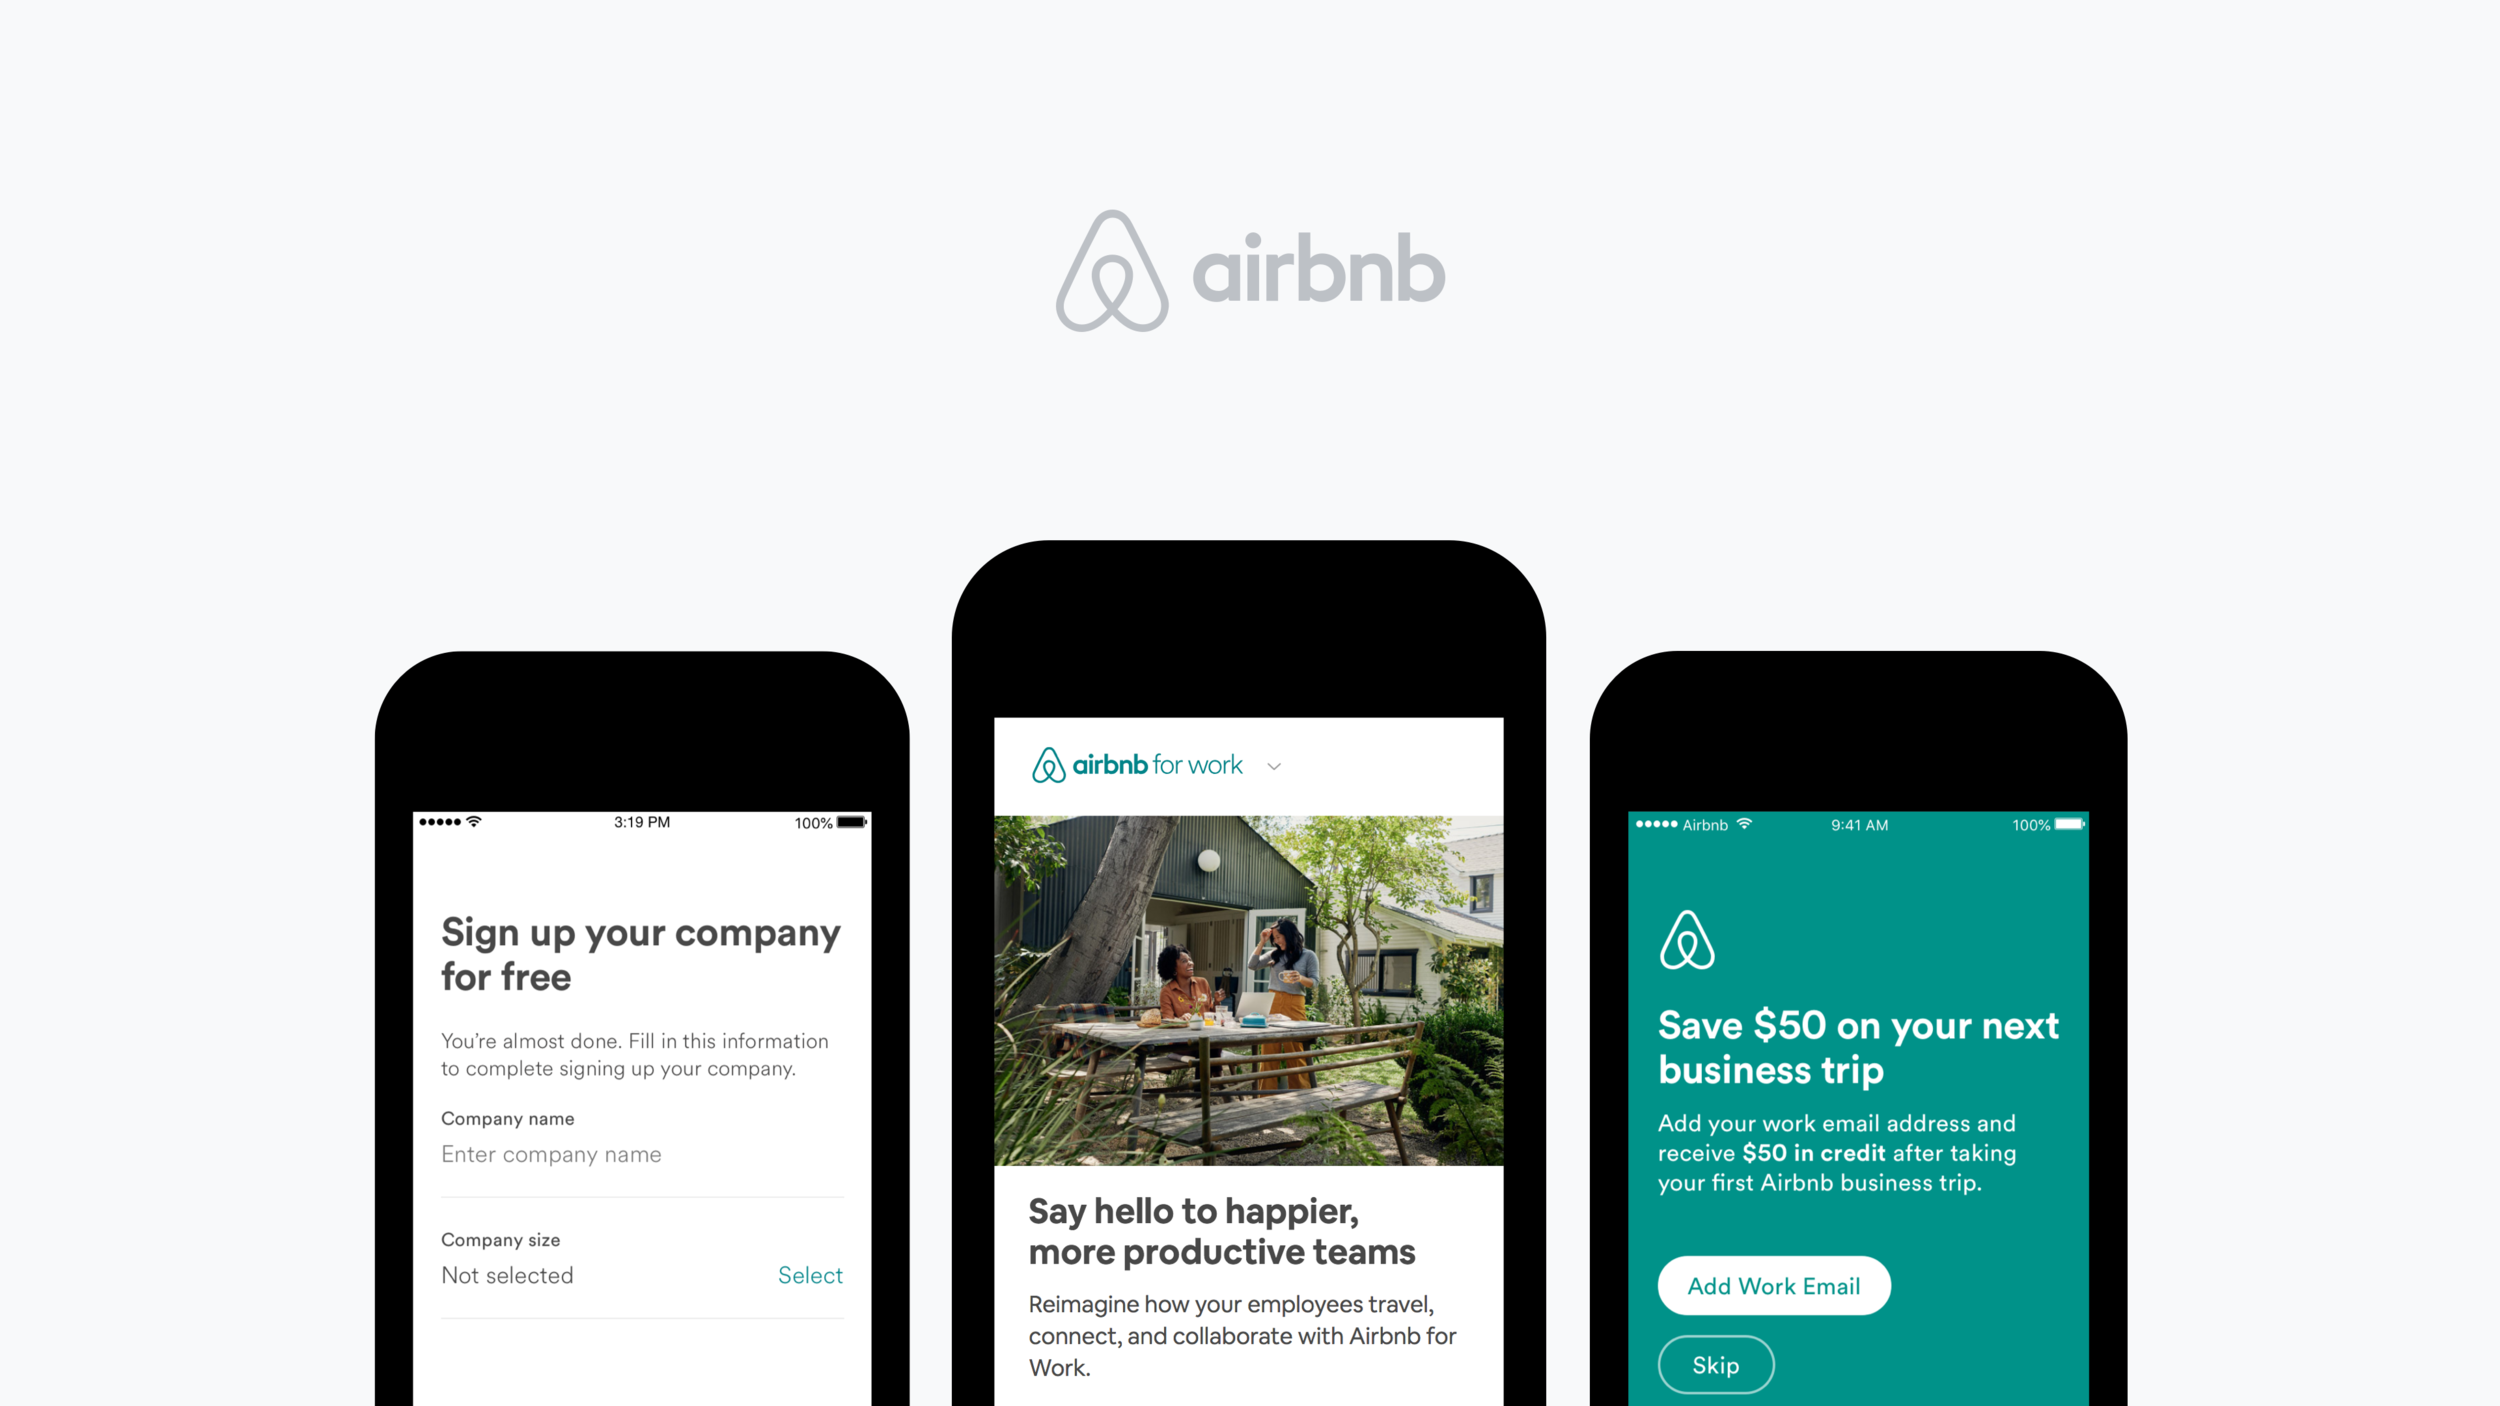 selzer_airbnb_g.png